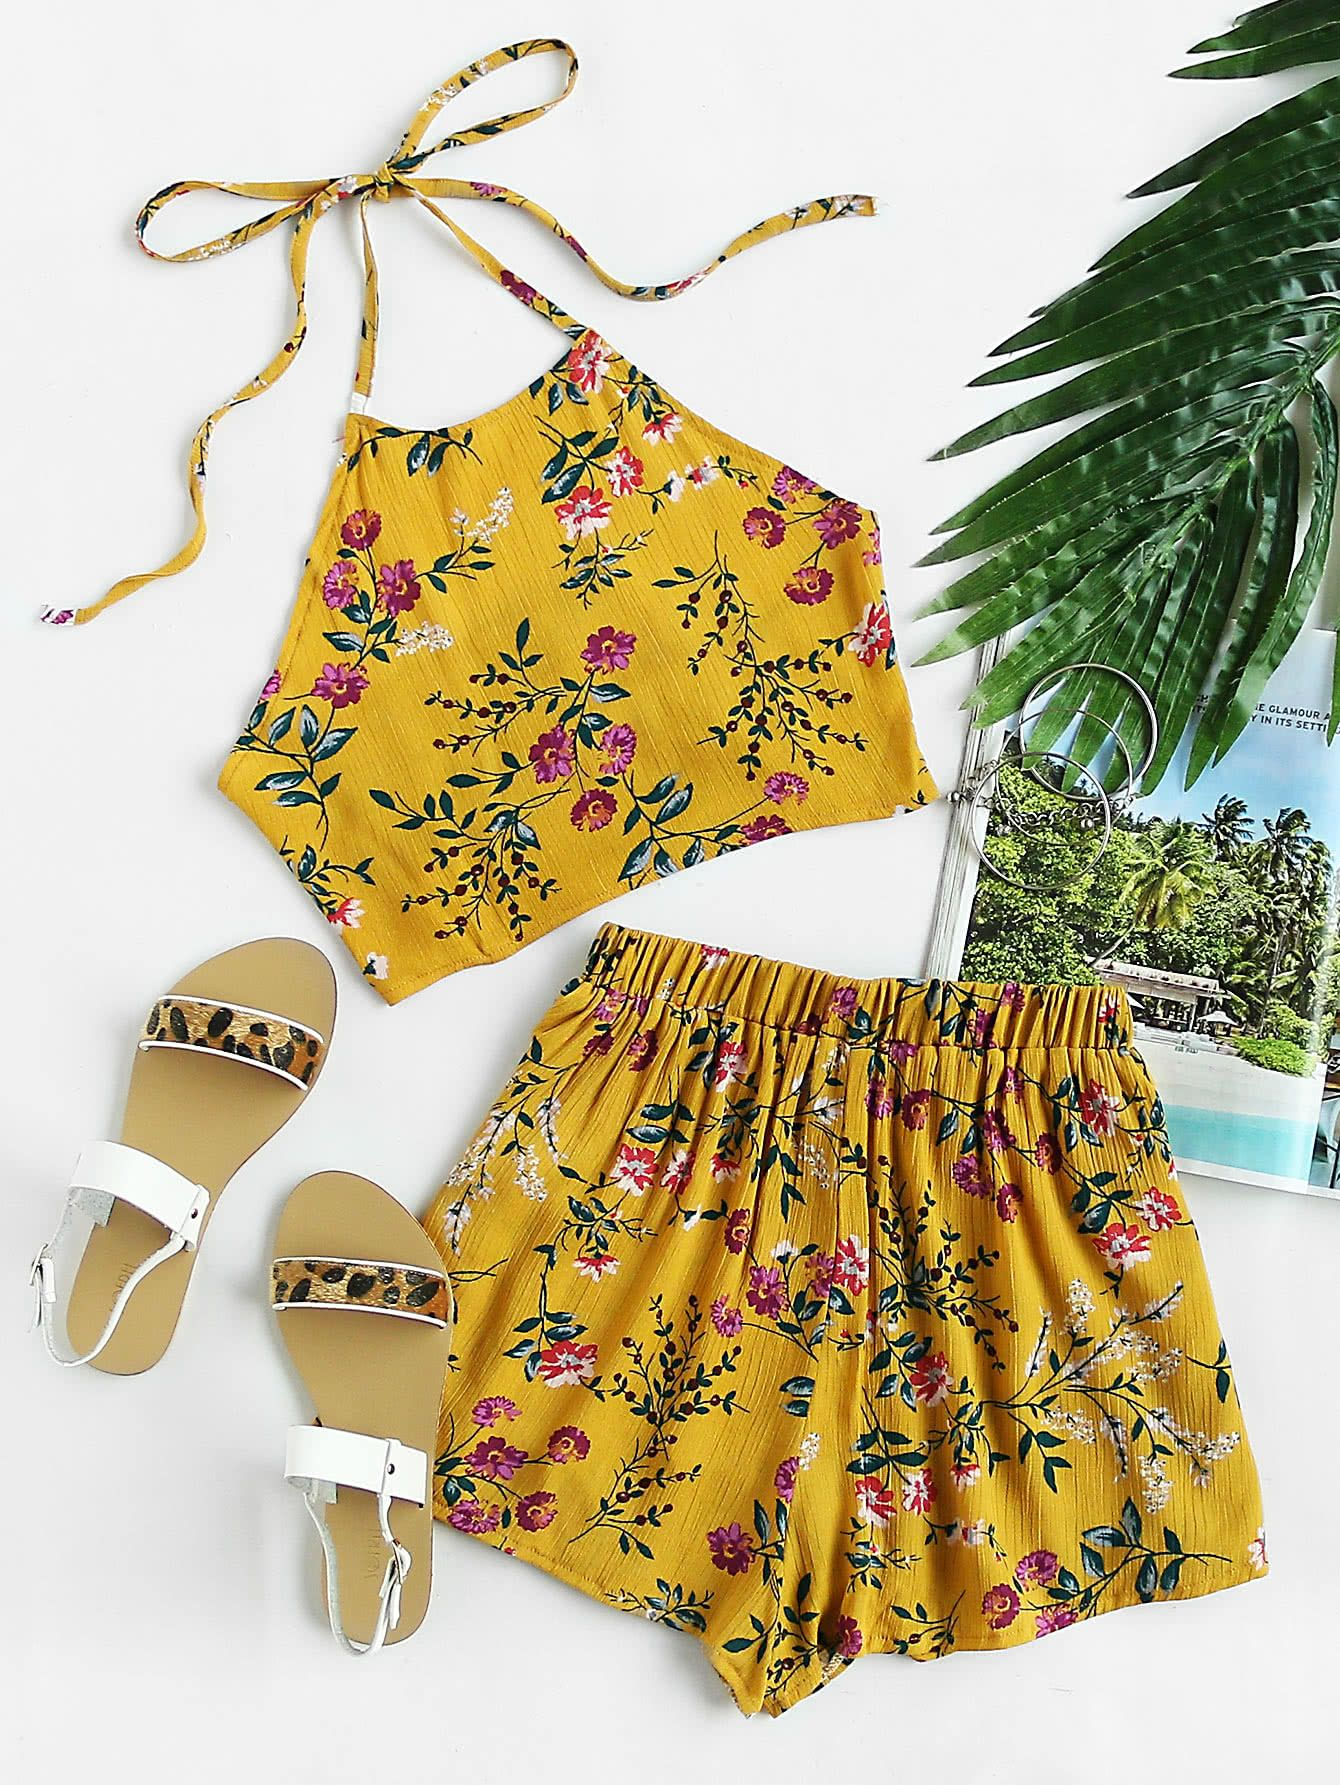 Floral Print Random Tie Open Back Crop Top With Shorts in 2019 ... f306945a40